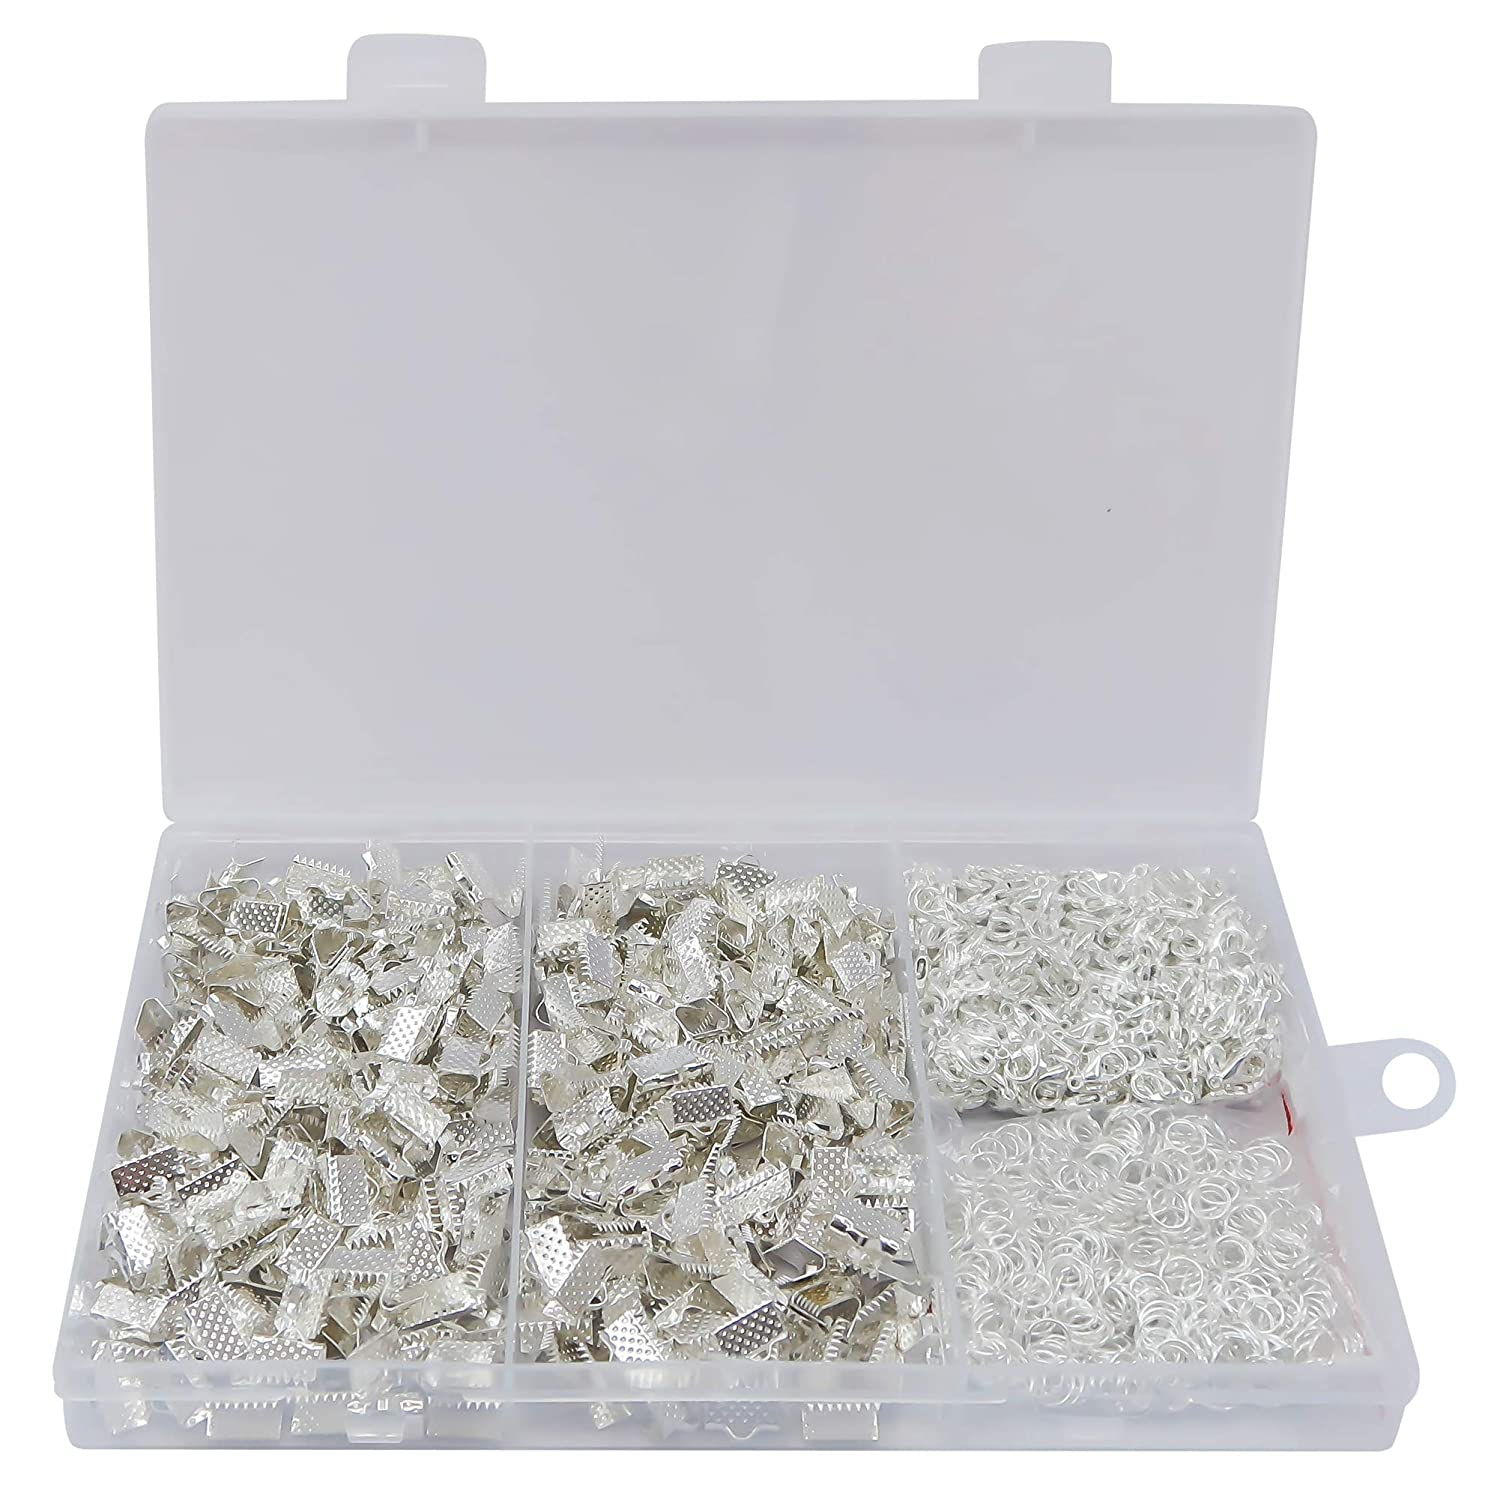 TOAOB 100 Pieces Silver Tone Pinch Crimp Ends for Jewellery Making